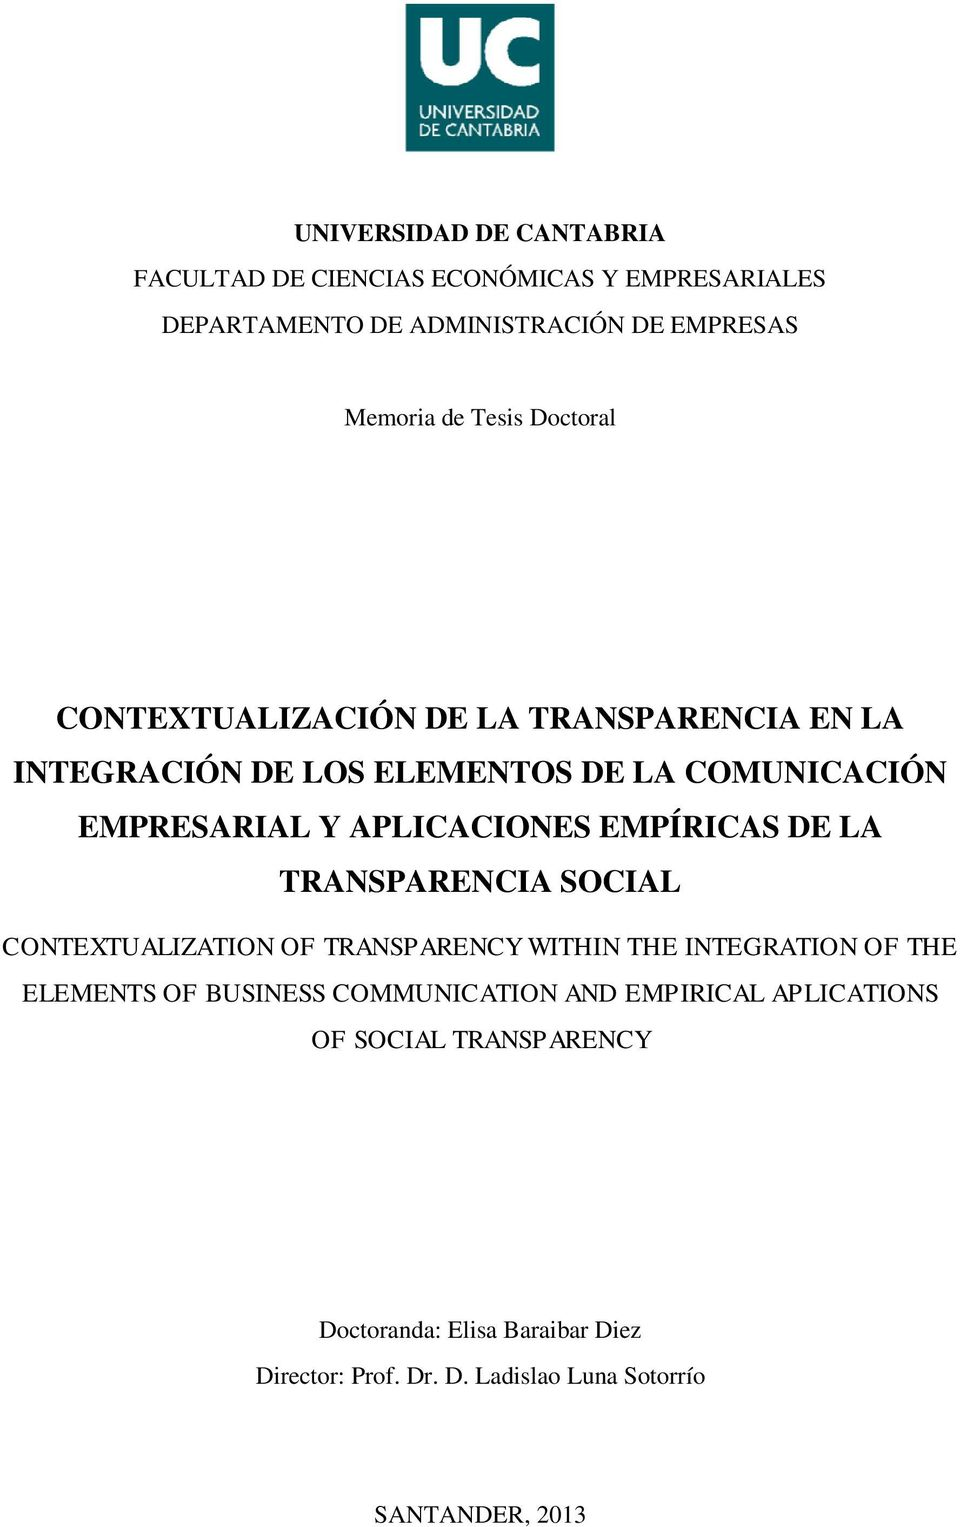 EMPÍRICAS DE LA TRANSPARENCIA SOCIAL CONTEXTUALIZATION OF TRANSPARENCY WITHIN THE INTEGRATION OF THE ELEMENTS OF BUSINESS